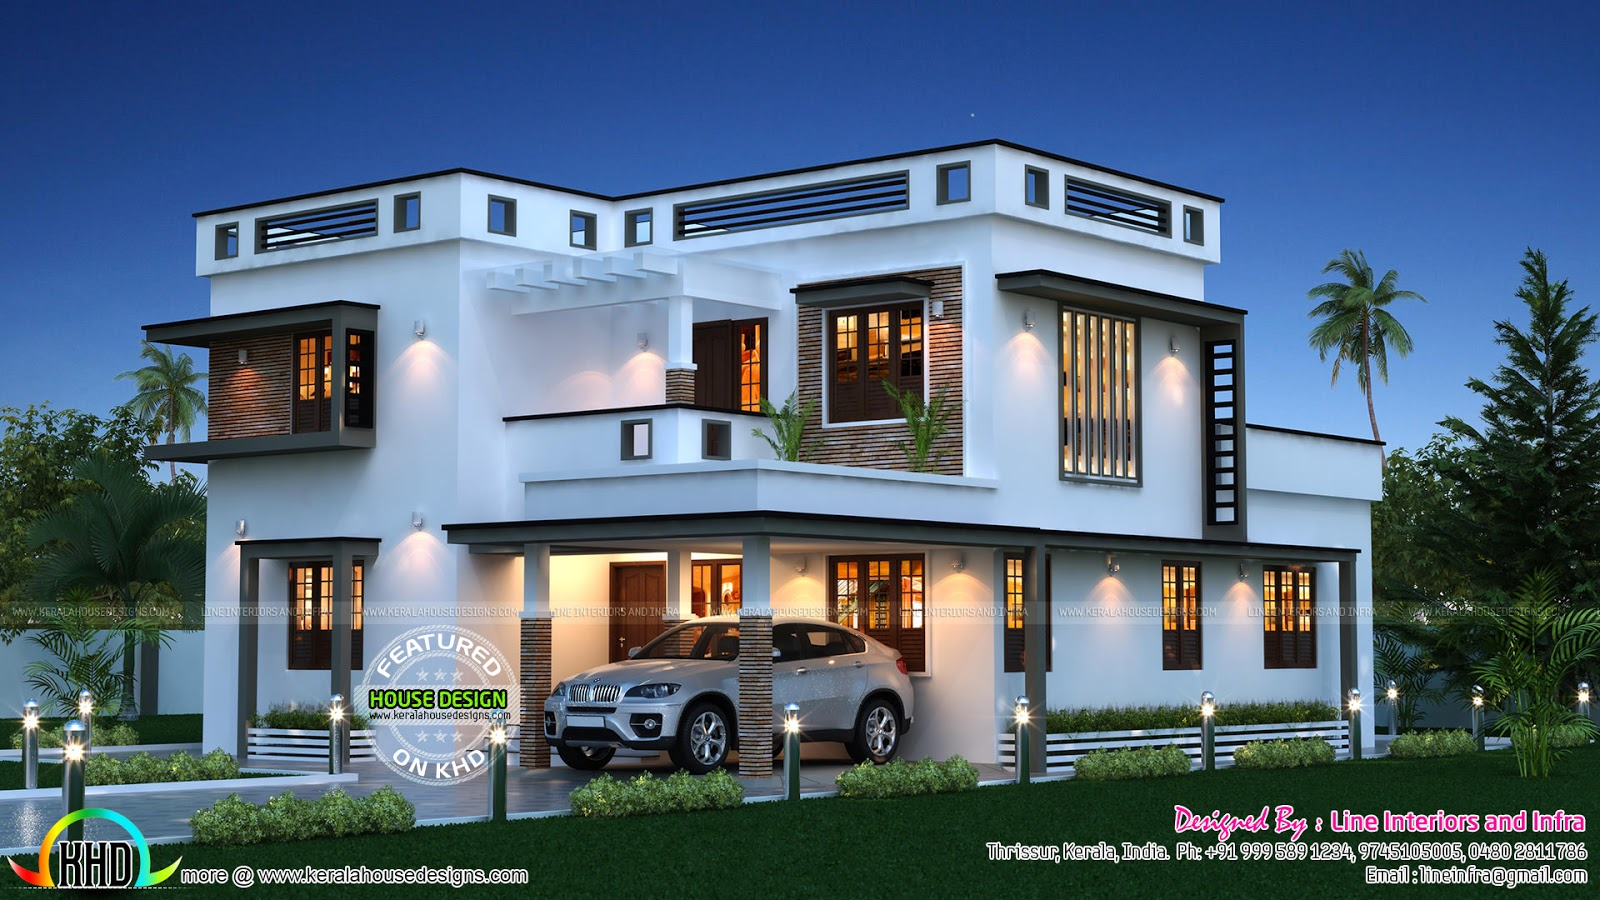 Beautiful 1600 sq ft home kerala home design and floor plans for 1600 square feet house plans